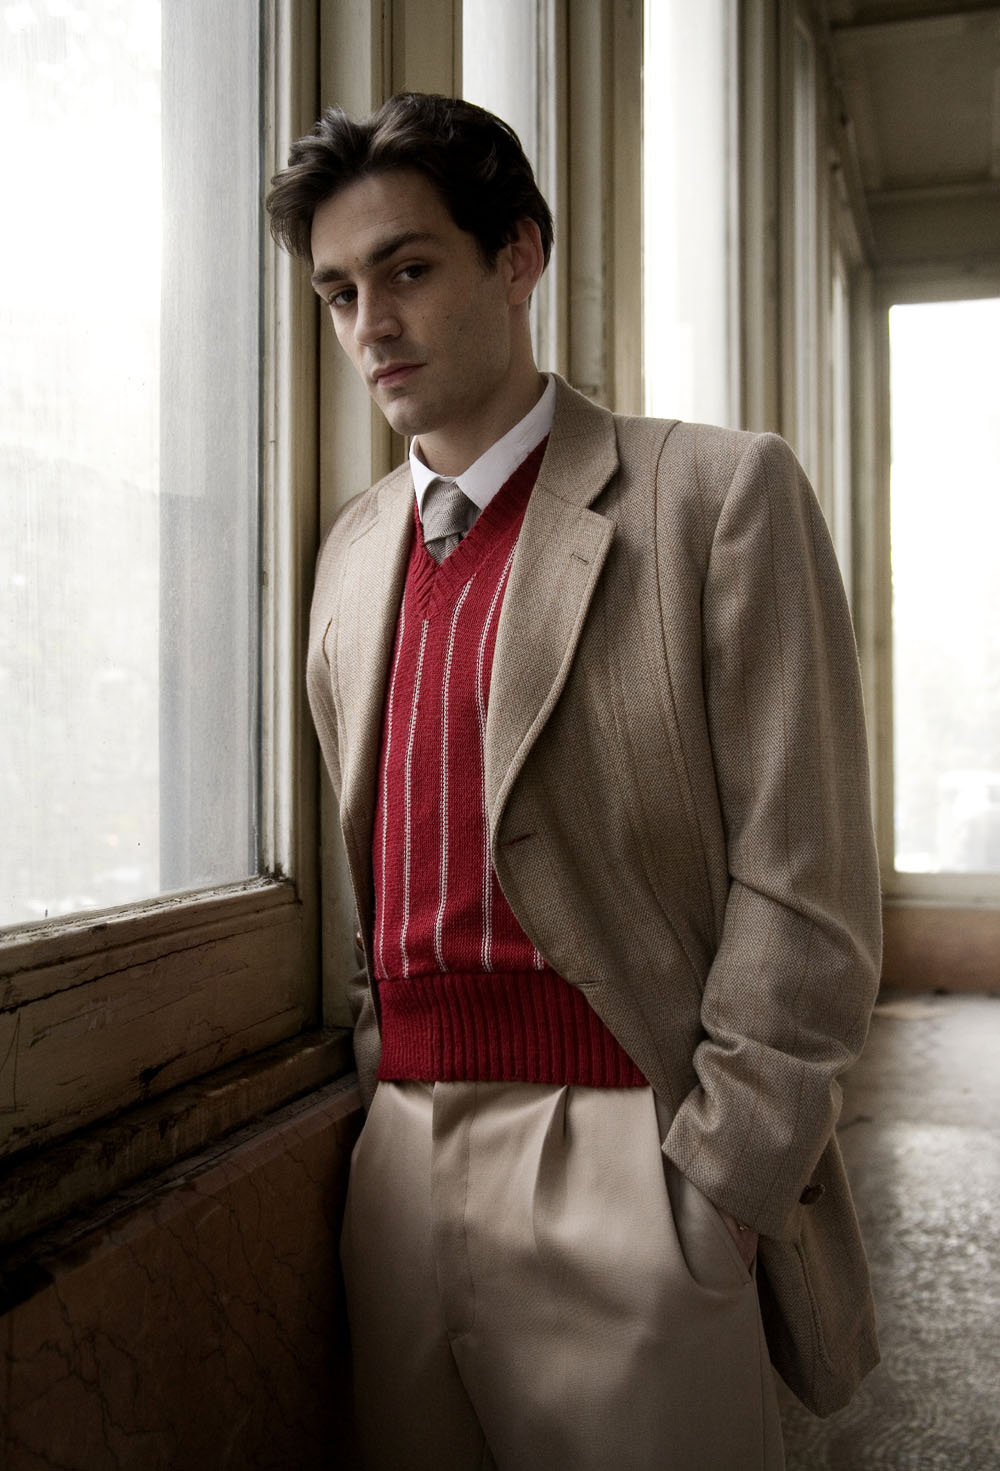 Matthew McNulty in Little Ashes